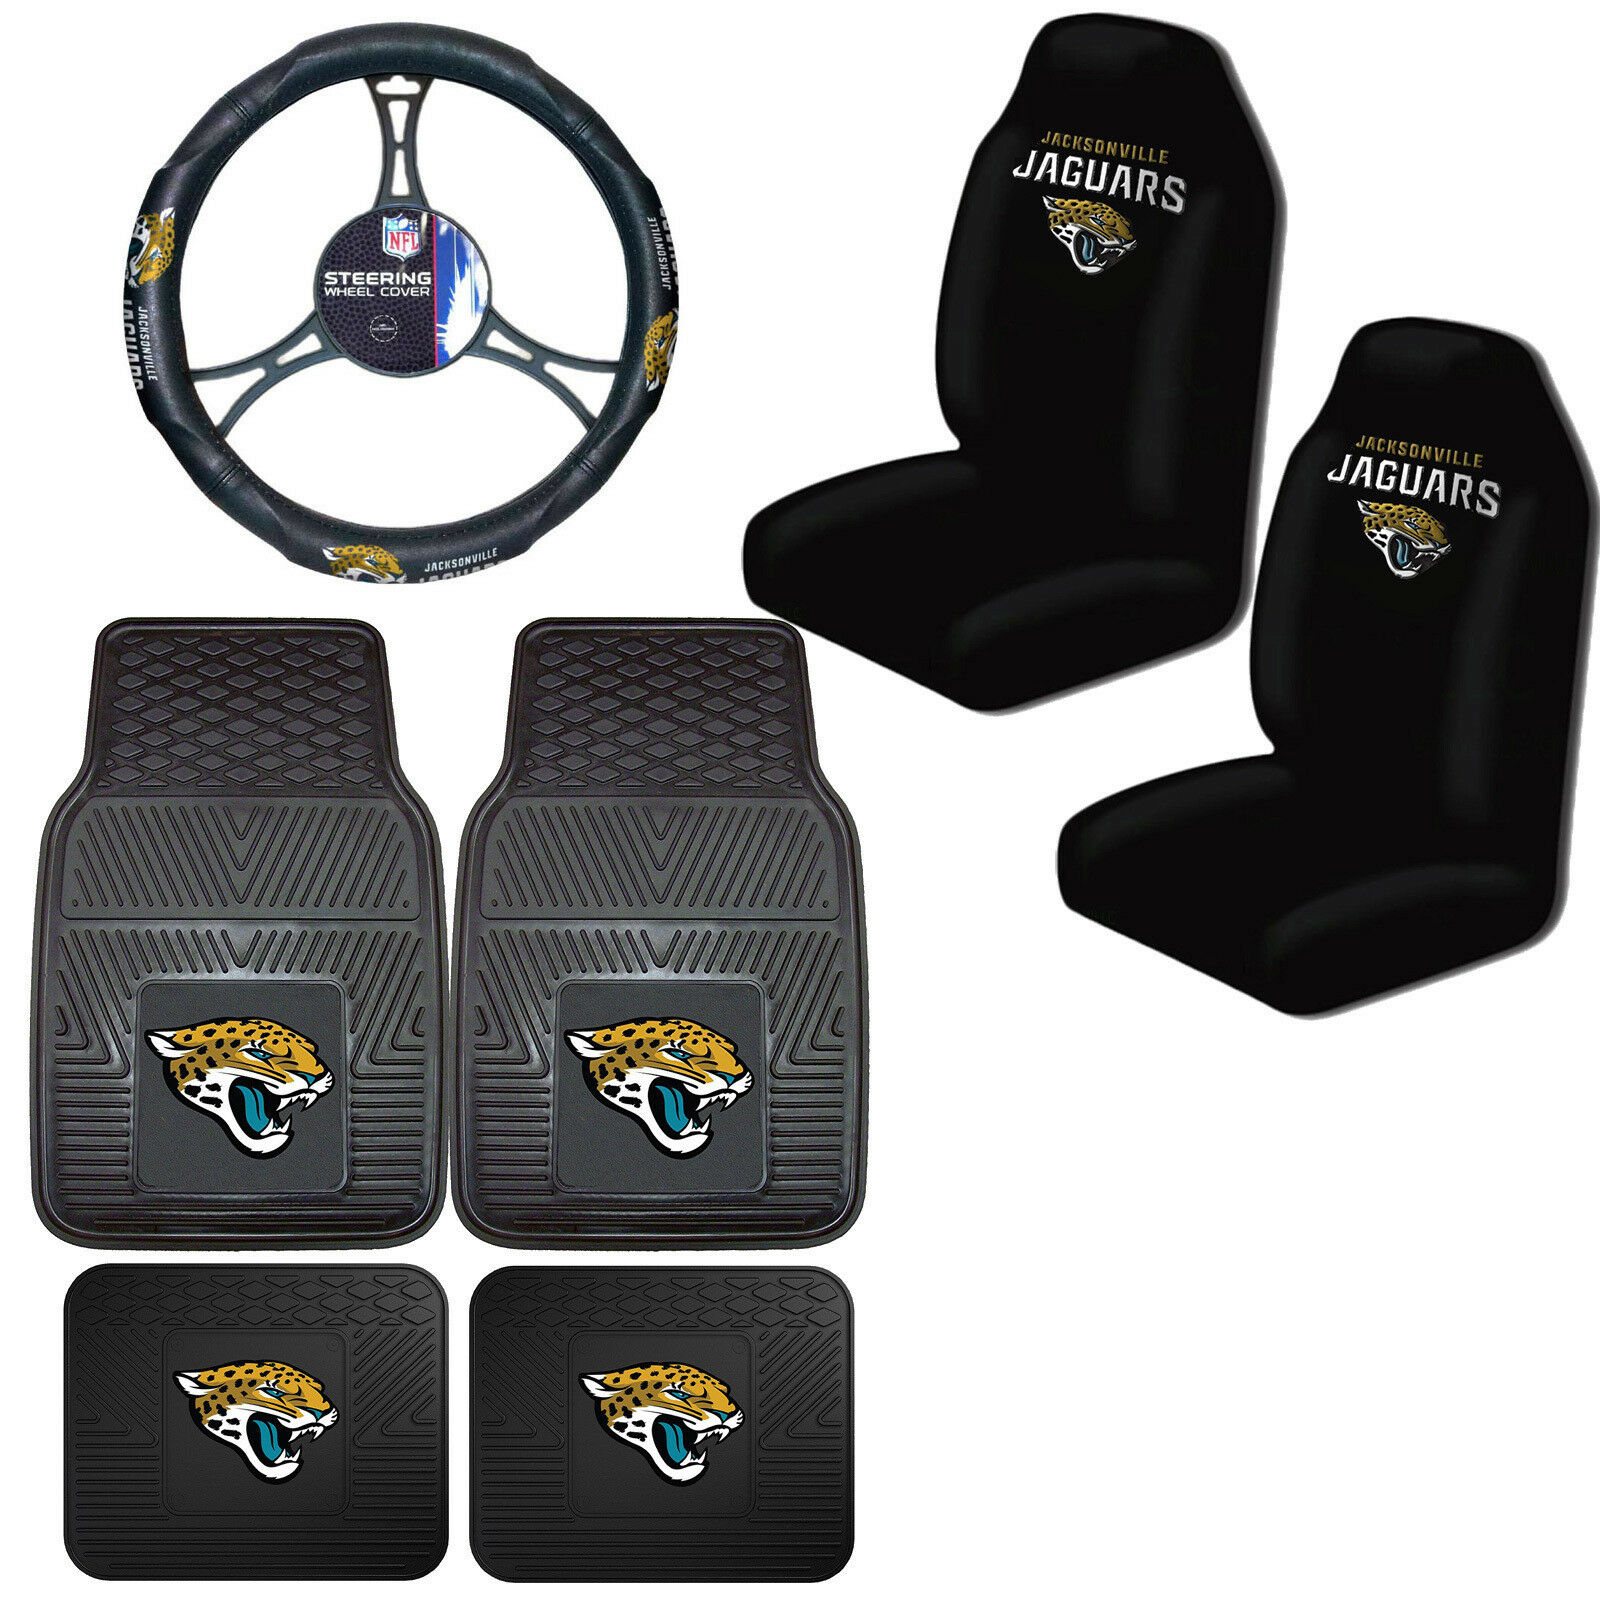 Marvelous Nfl Jacksonville Jaguars Car Truck Seat Covers Floor Mats Steering Wheel Cover Theyellowbook Wood Chair Design Ideas Theyellowbookinfo